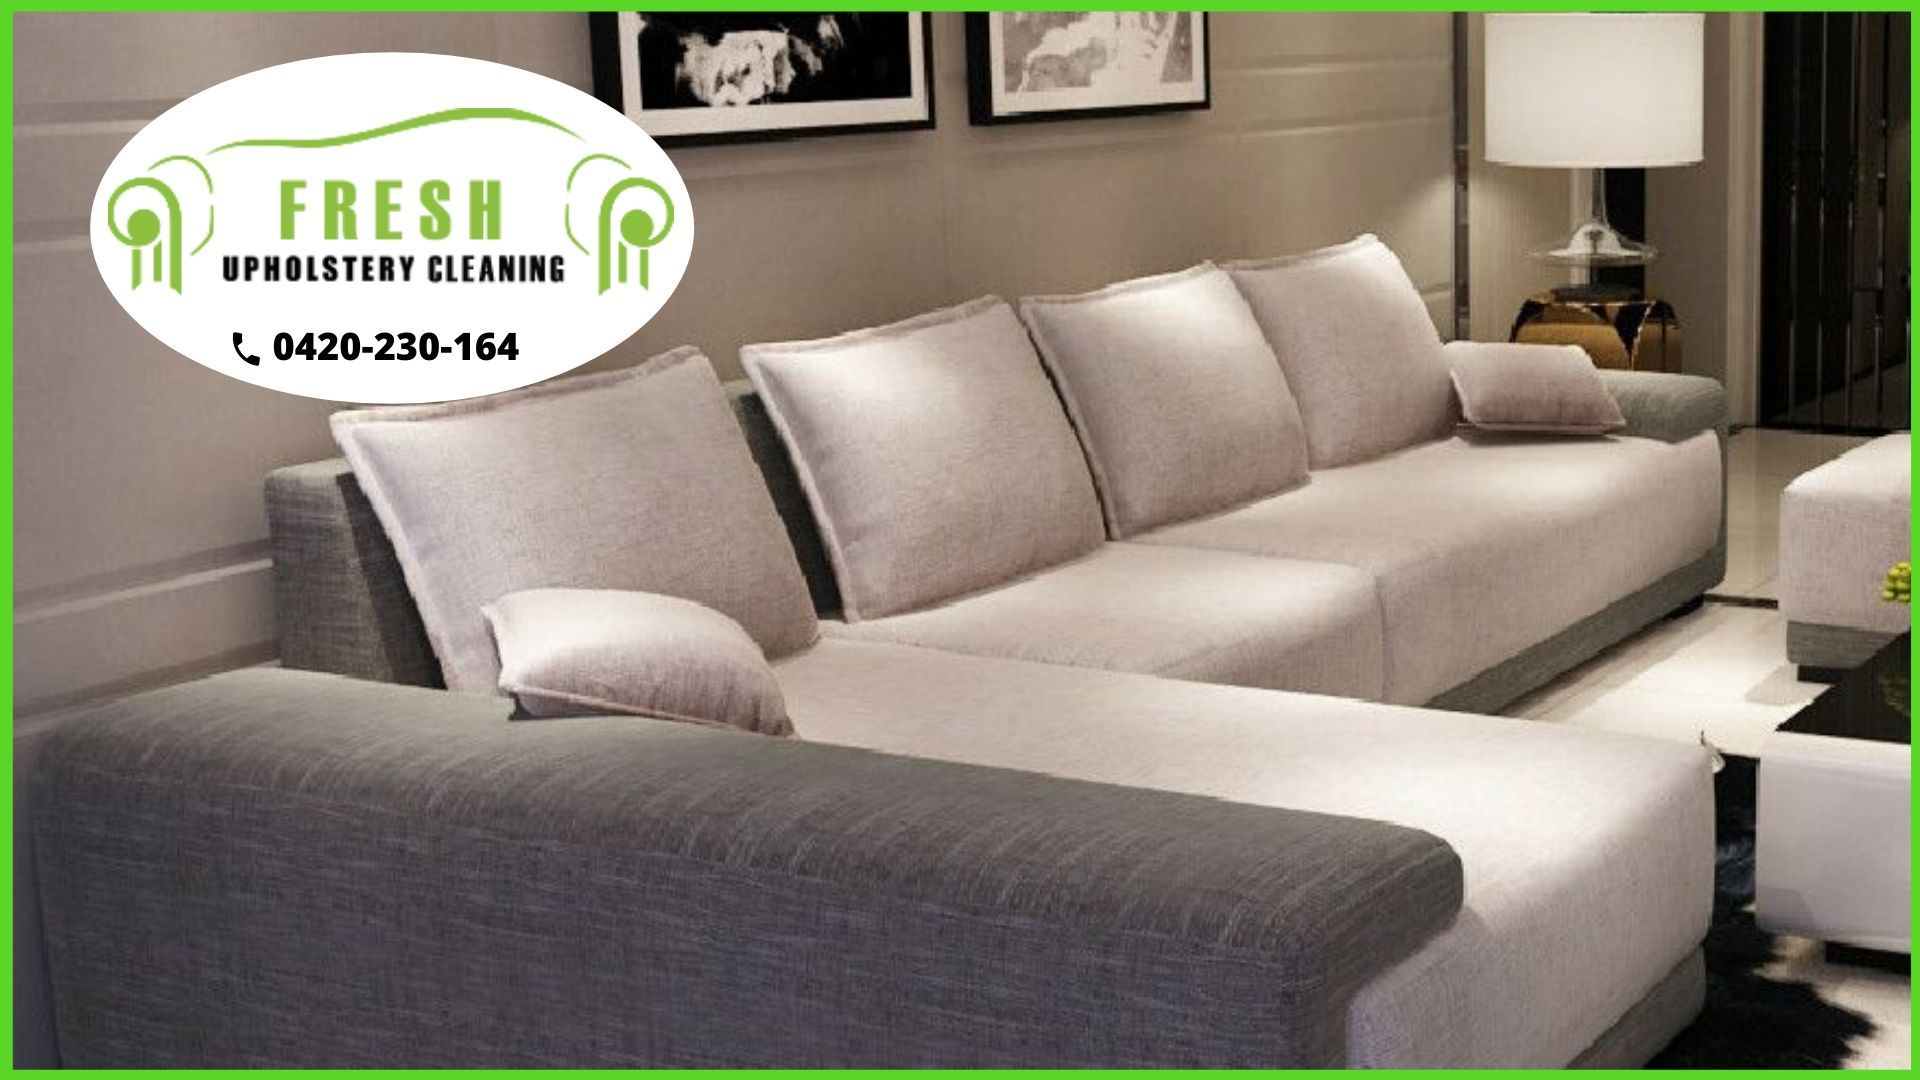 Upholstery Cleaning Maitland